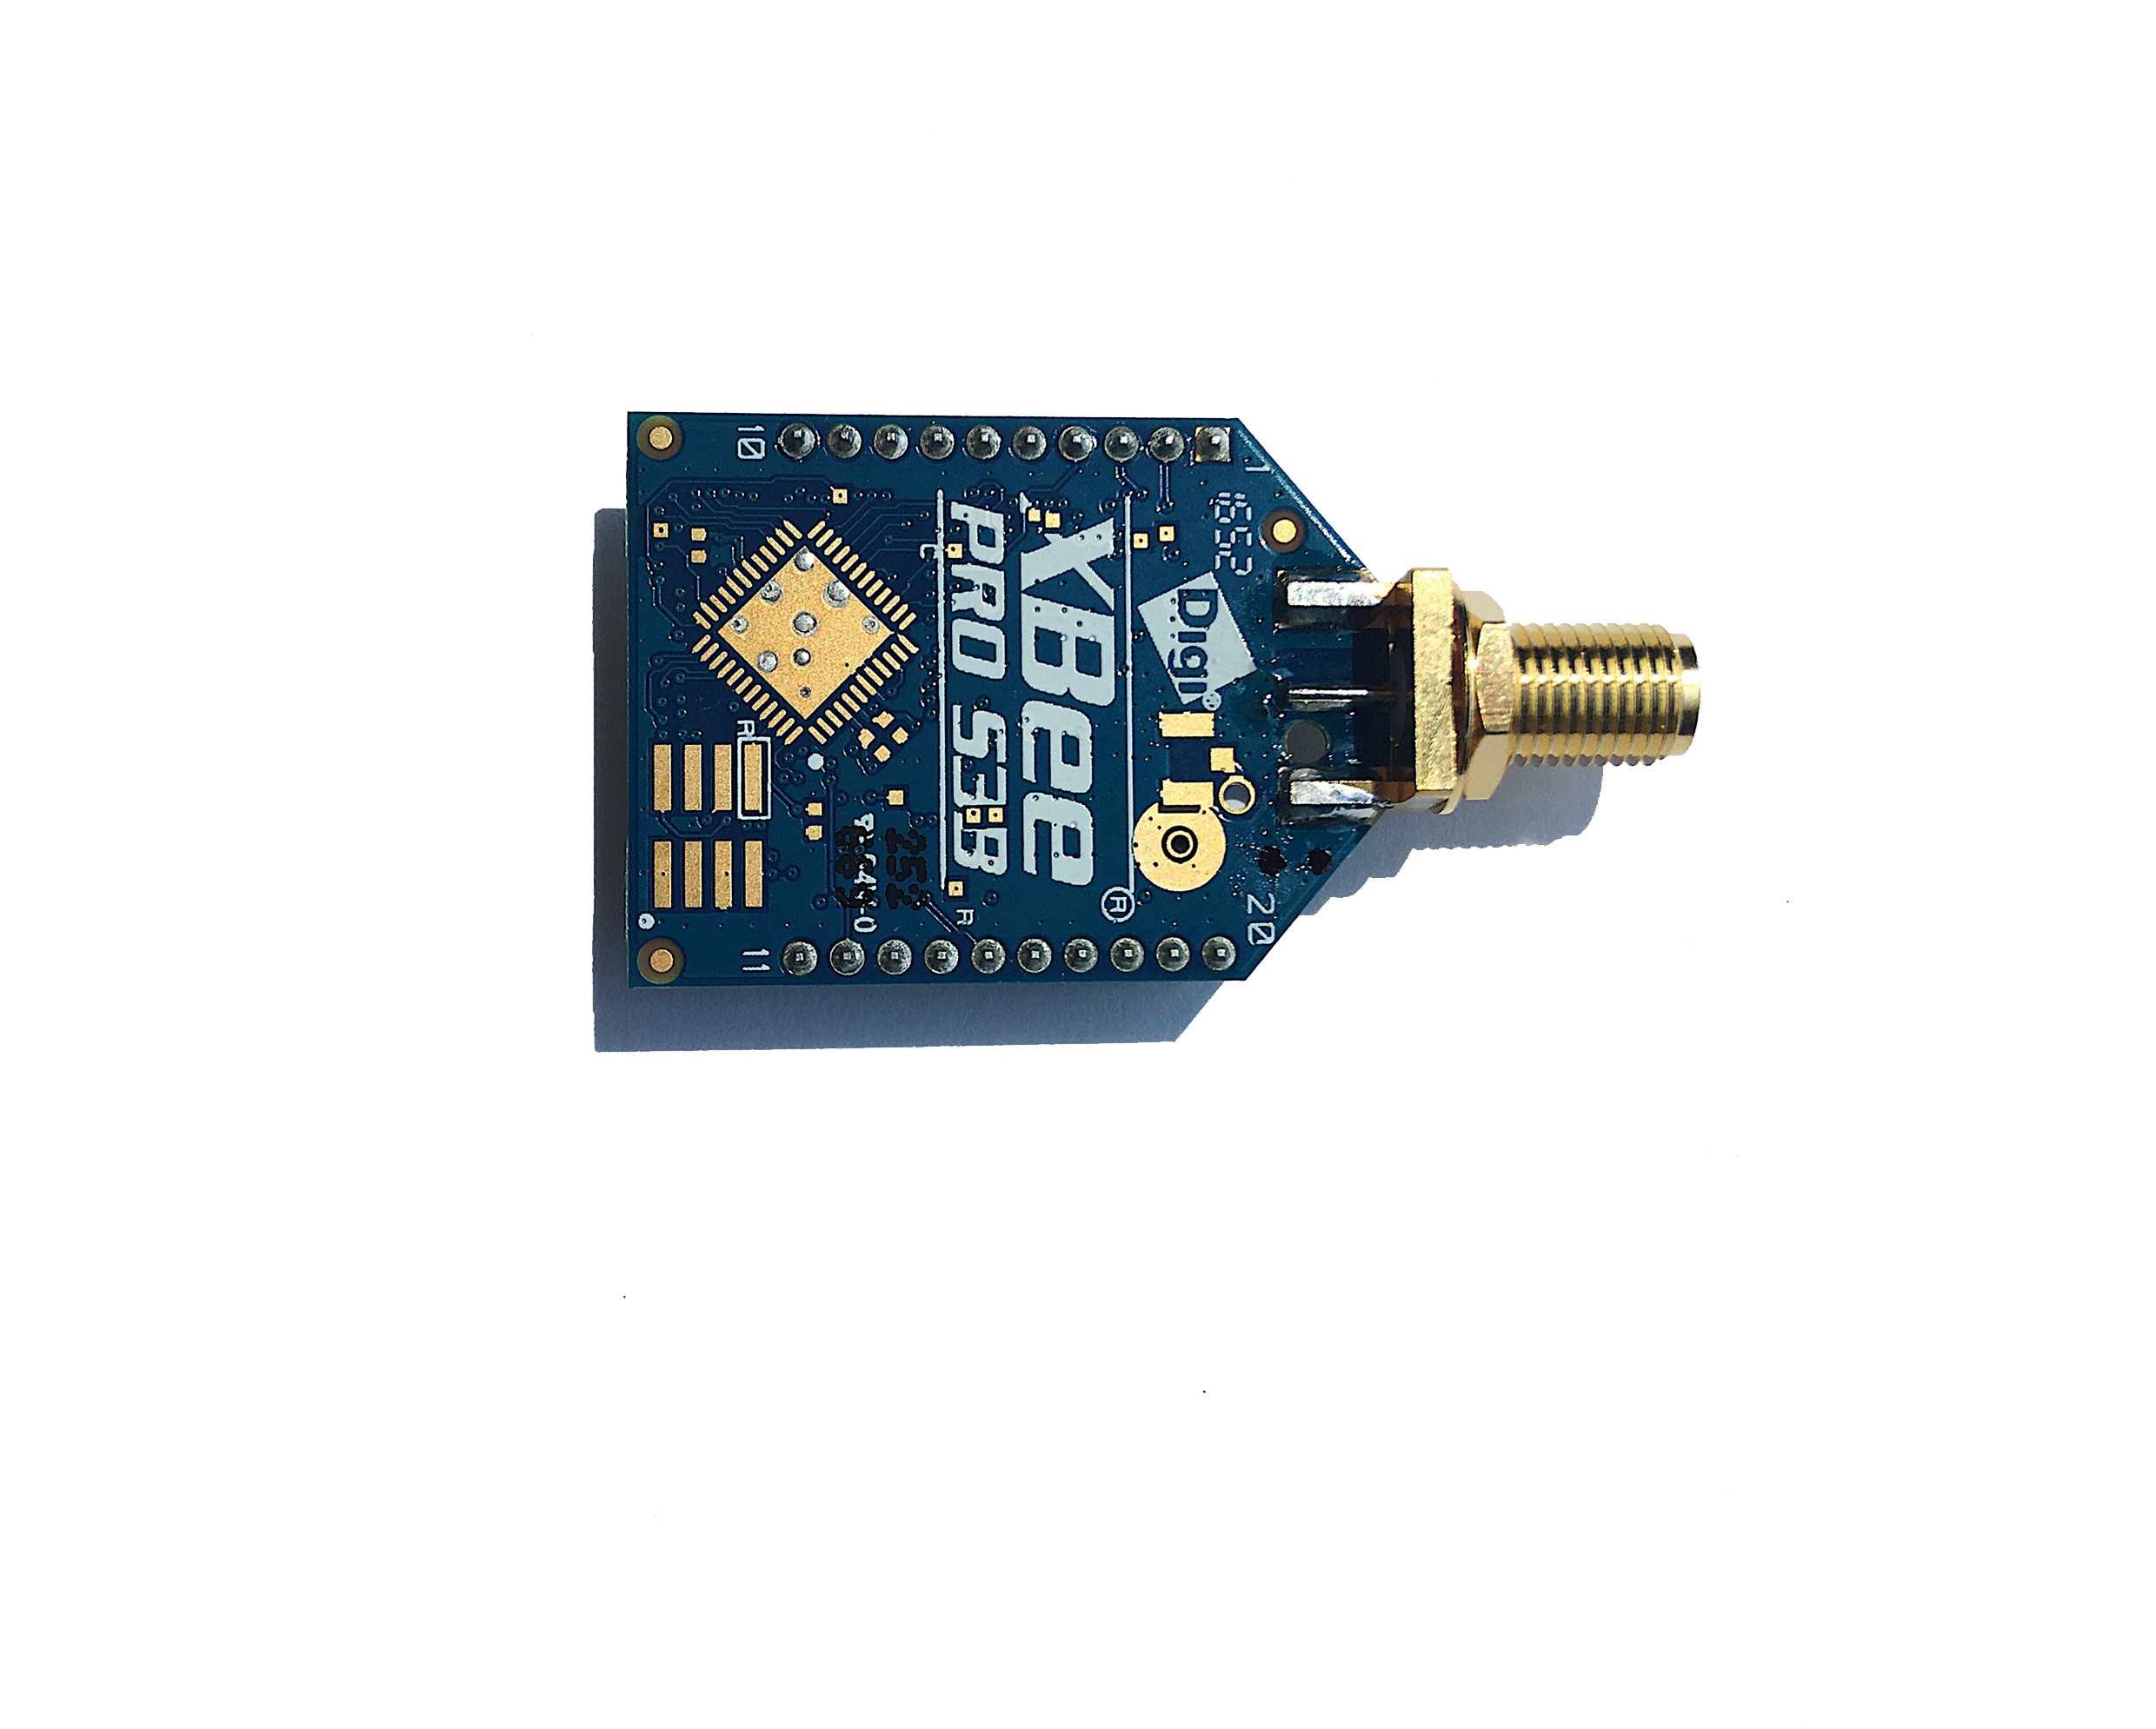 DIGI Zero PIXHAWK APM and Other Flight Control XBEE 900HP S3B Data Transmission Module Radio Transceiver Module 2 pieces crius xbee pro 900hp s3b module with adapter rpsma wireless kit 250mw 28 miles for pixhawk apmfreeshipping